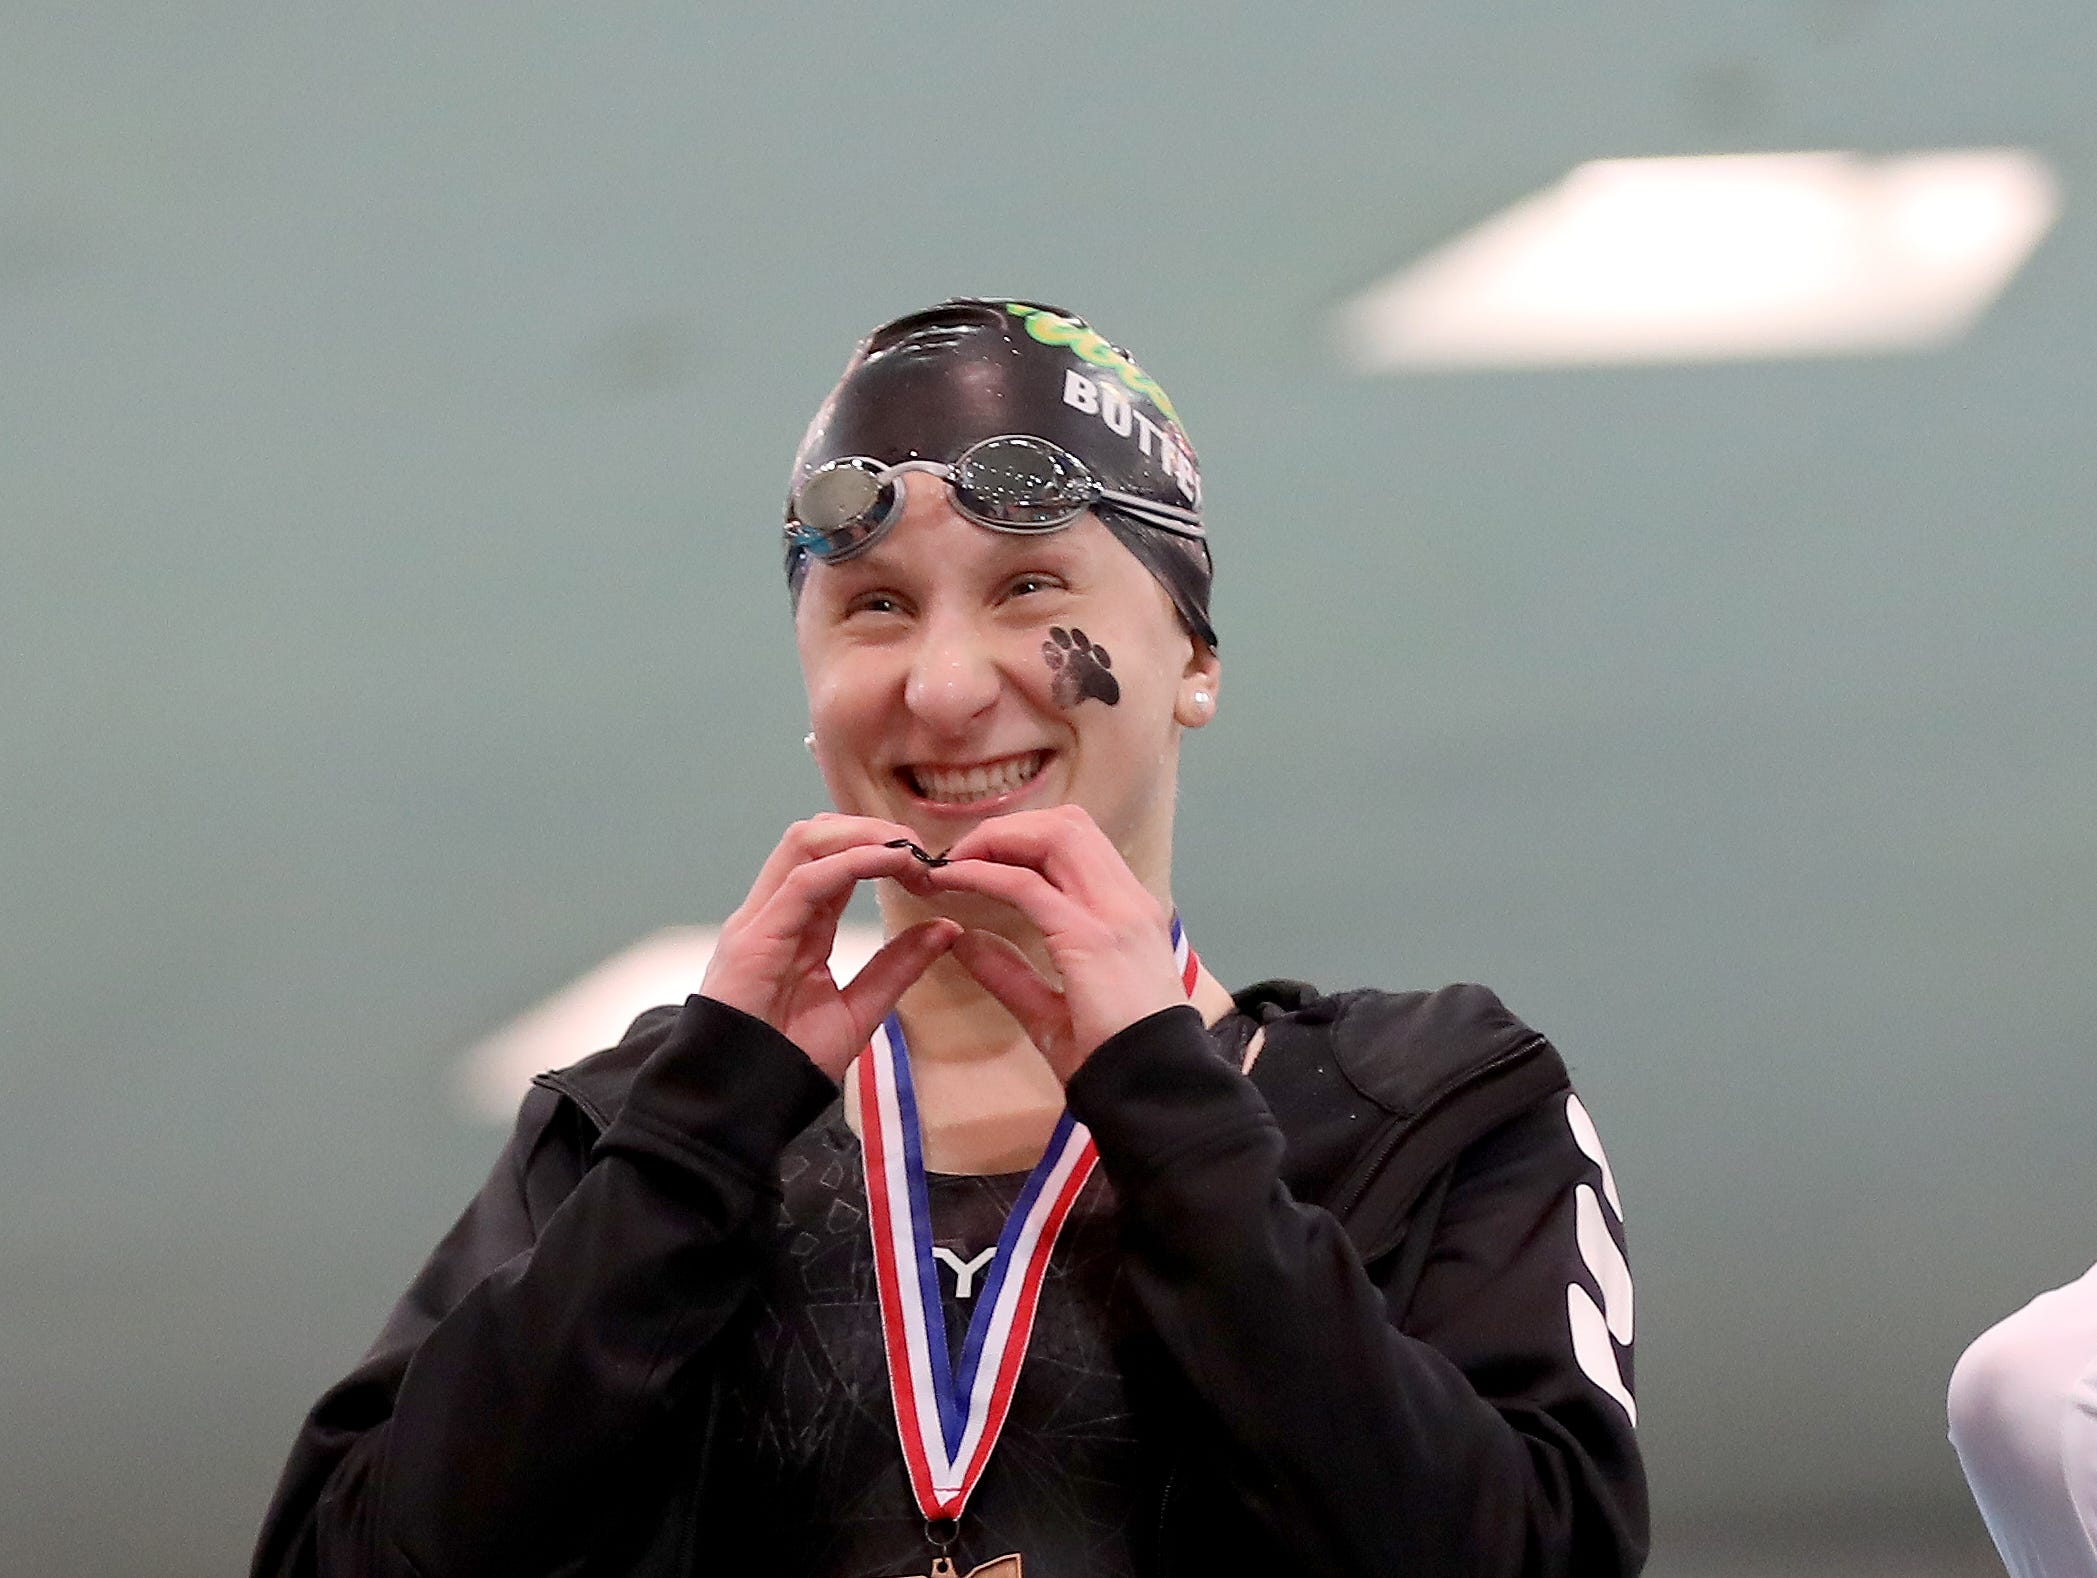 Ursuline swimmer Claudia Butterfield celebrates on the podium at the OHSAA state swimming and diving championships in Canton, Ohio, Friday, Feb. 23, 2019.